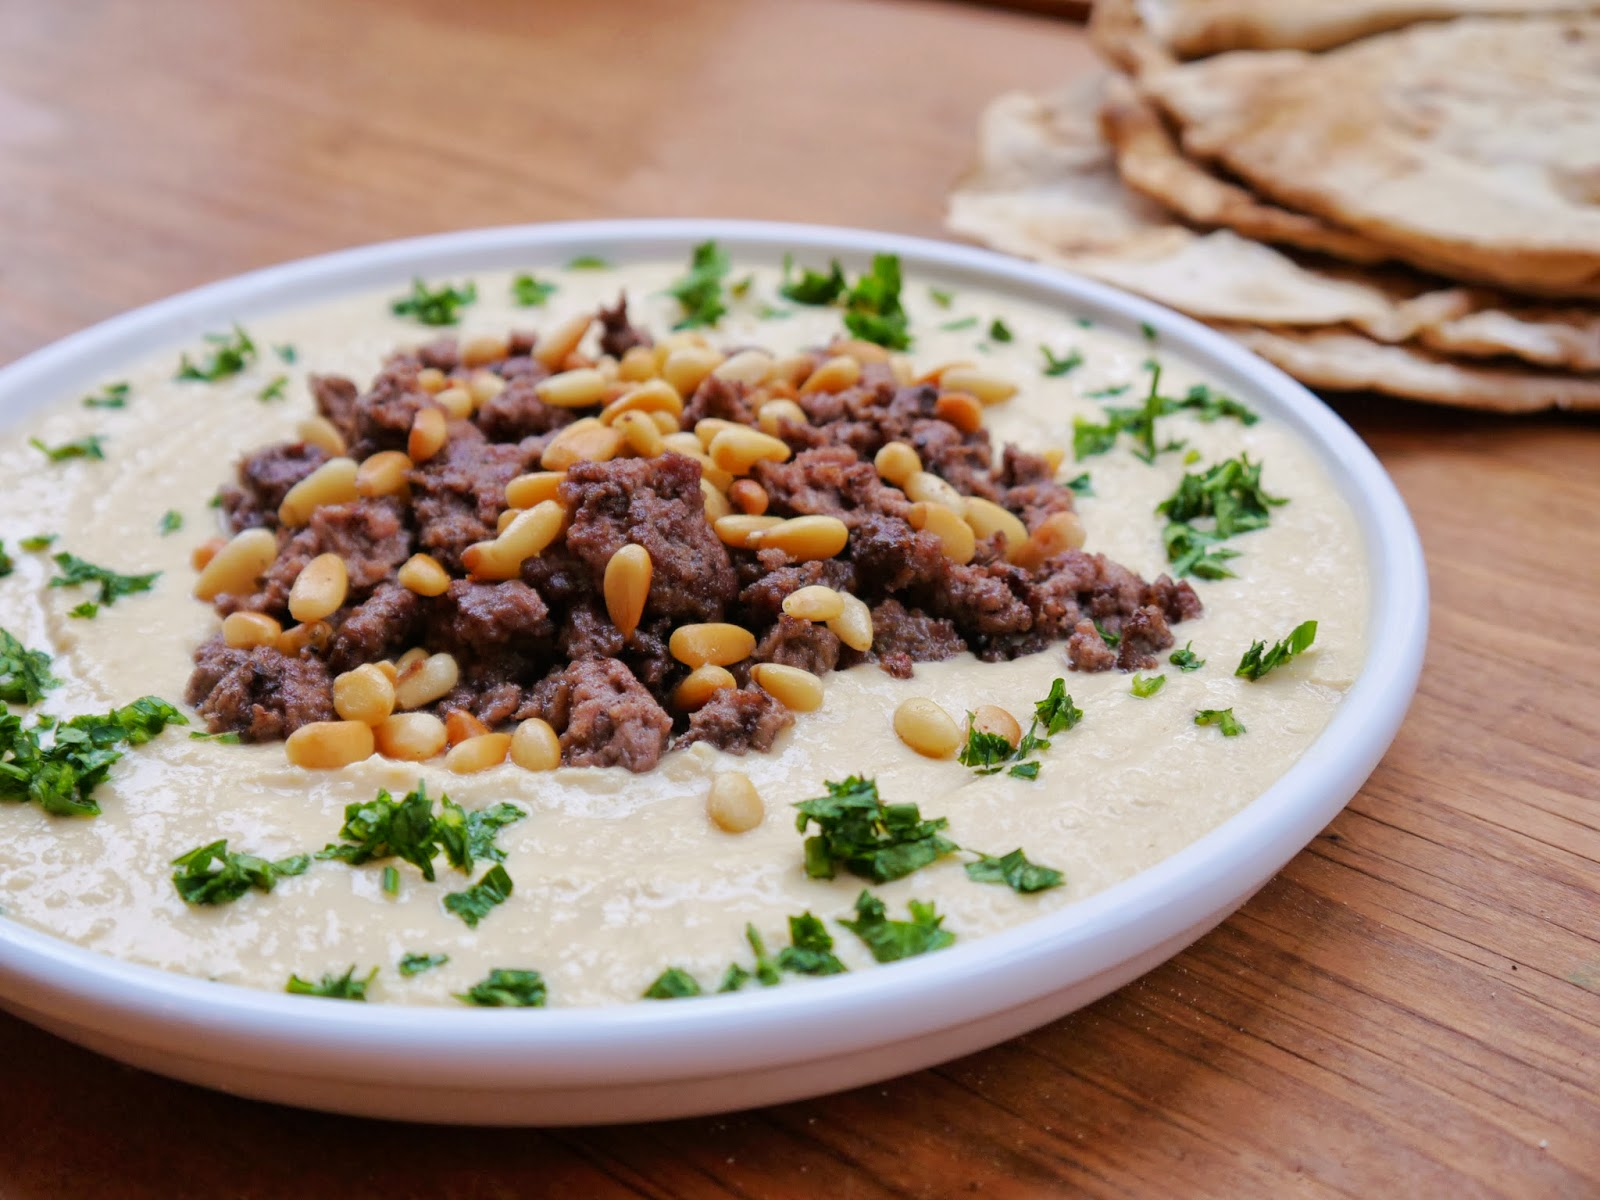 Bint rhodas kitchen welcoming autumn hummus with spiced lamb or here is a way to spice up your hummus serve it topped with warm spiced minced lamb and toasted pine nuts add a pile of hot arabic bread and some fresh forumfinder Image collections